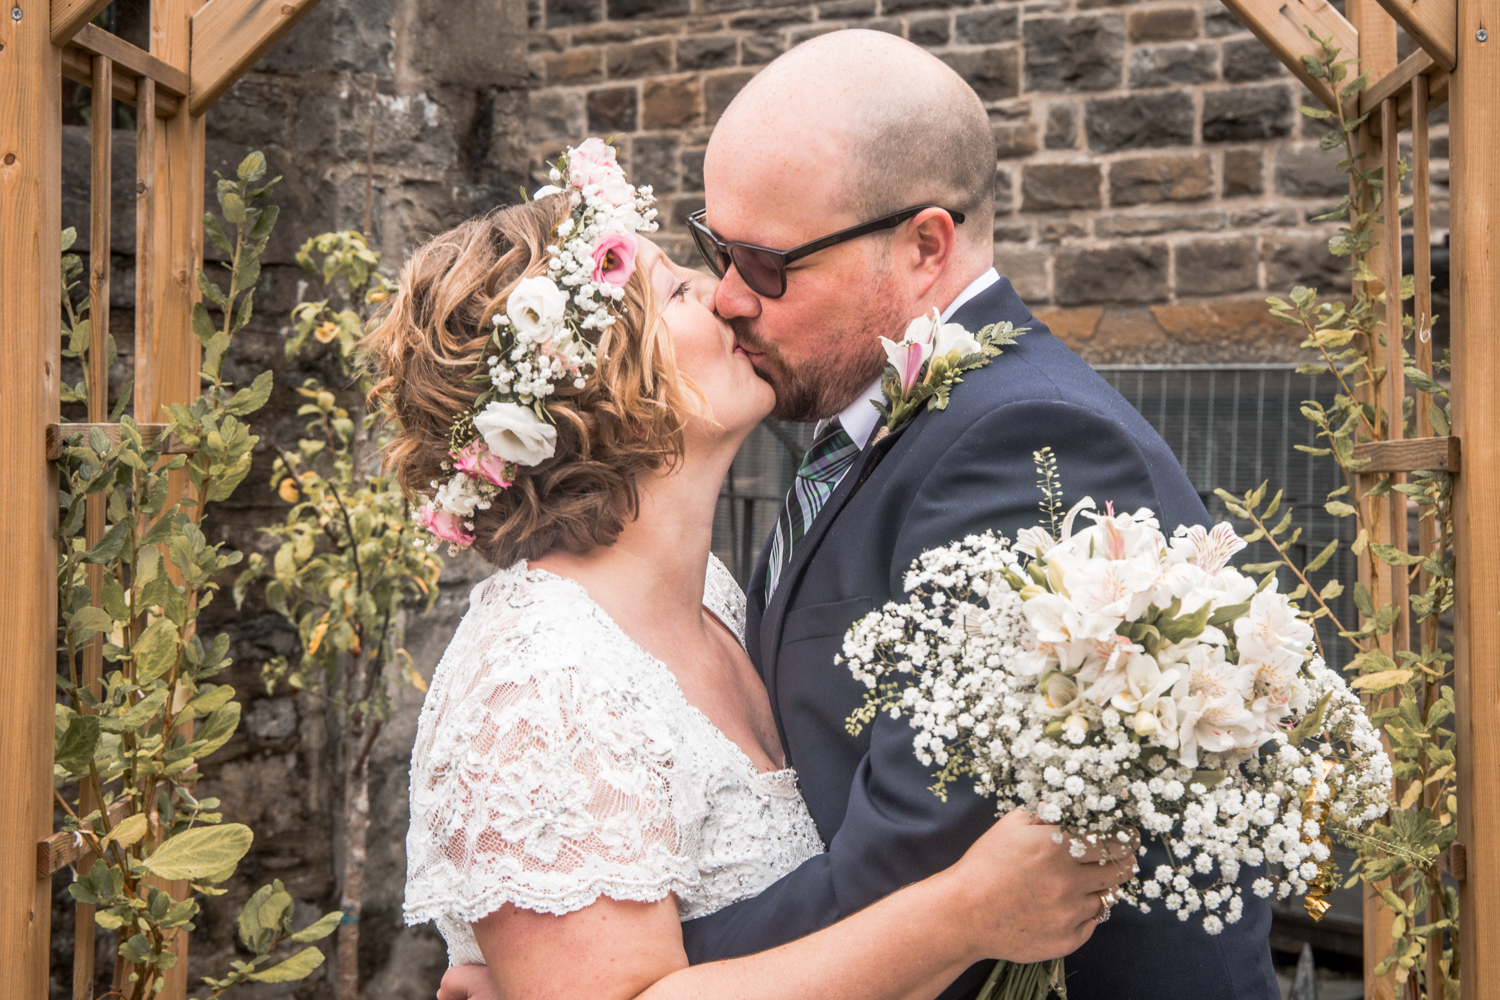 Best and most natural wedding photography in swansea